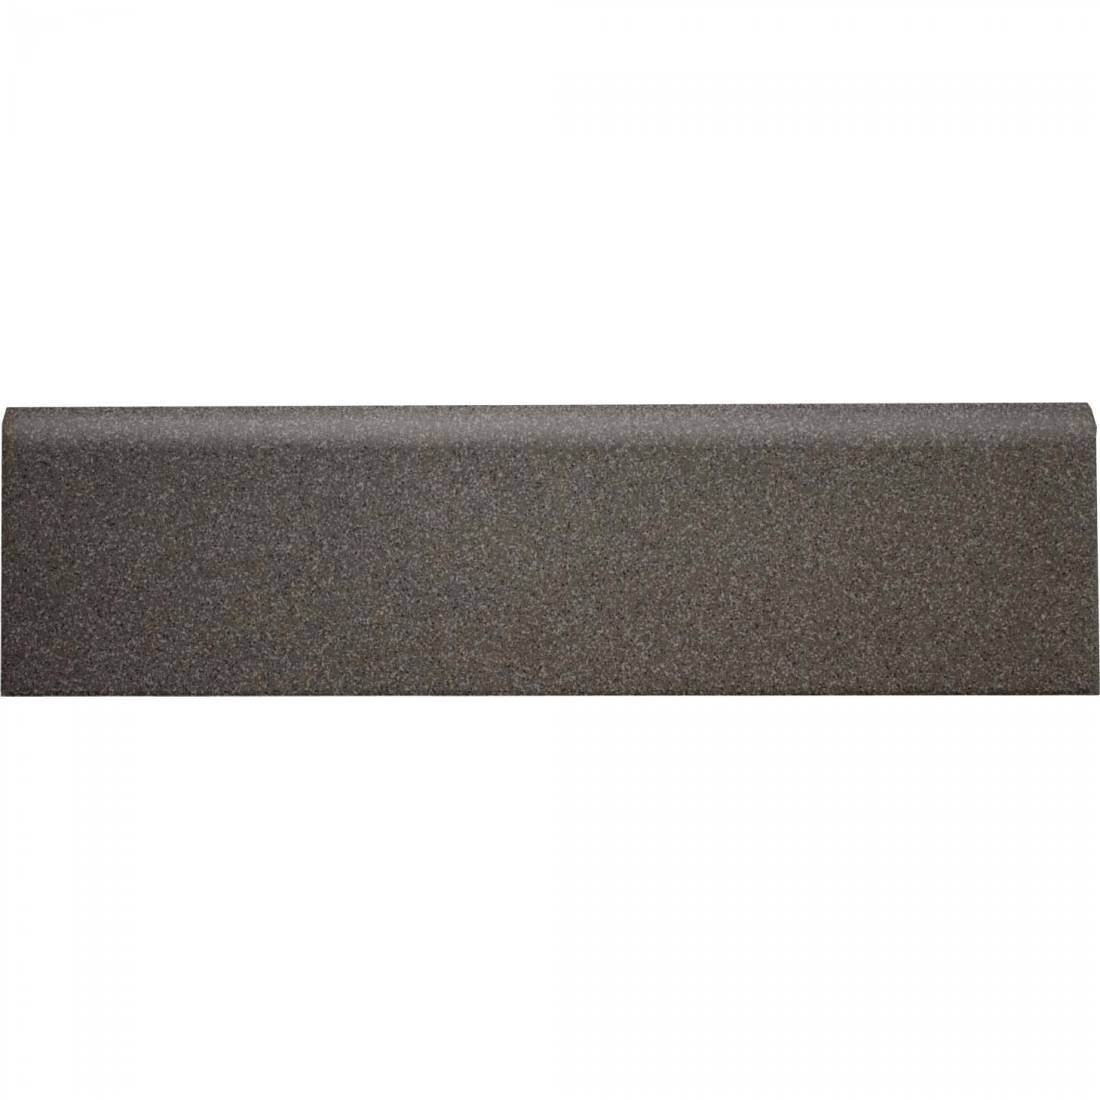 Granit Skirt Plinth 30x8 Antracit Dark Grey Matt 1